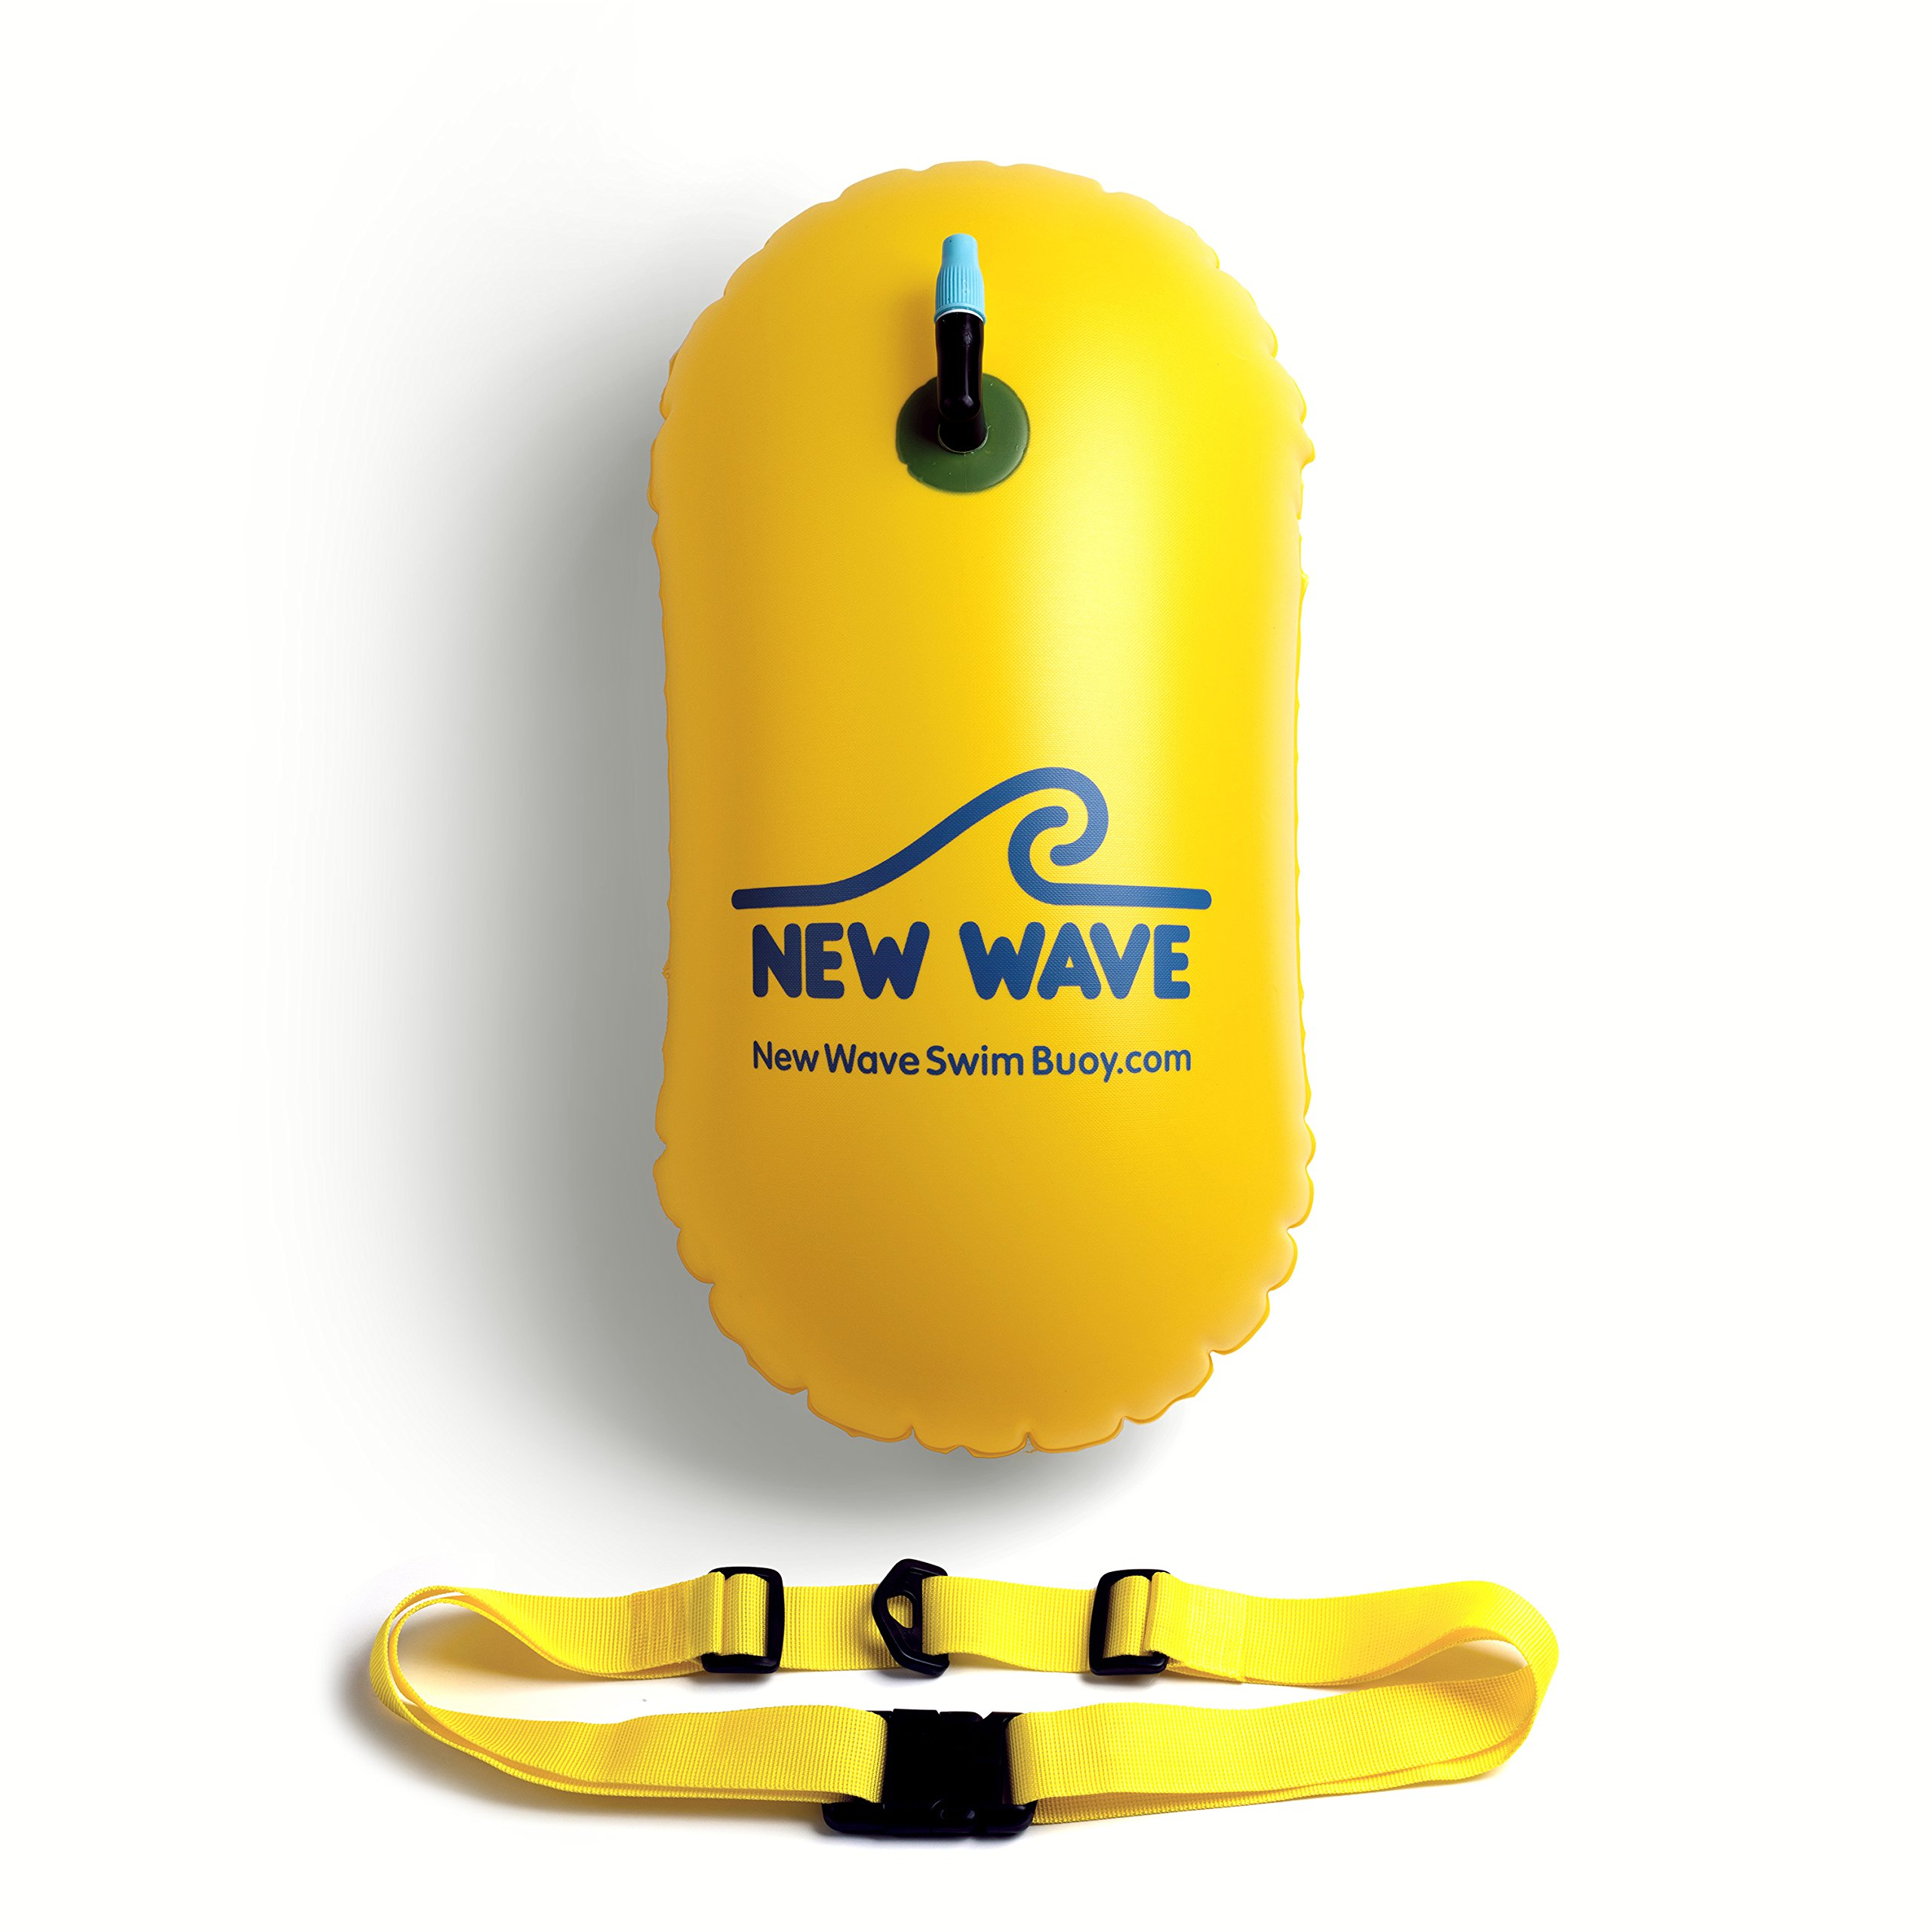 New Wave Swim Bubble for Open Water Swimmers and Triathletes - Be Bright, Be Seen & Be Safer with New Wave While Swimming Outdoors with This Safety Swim Buoy Tow Float (Yellow) by New Wave Swim Buoy